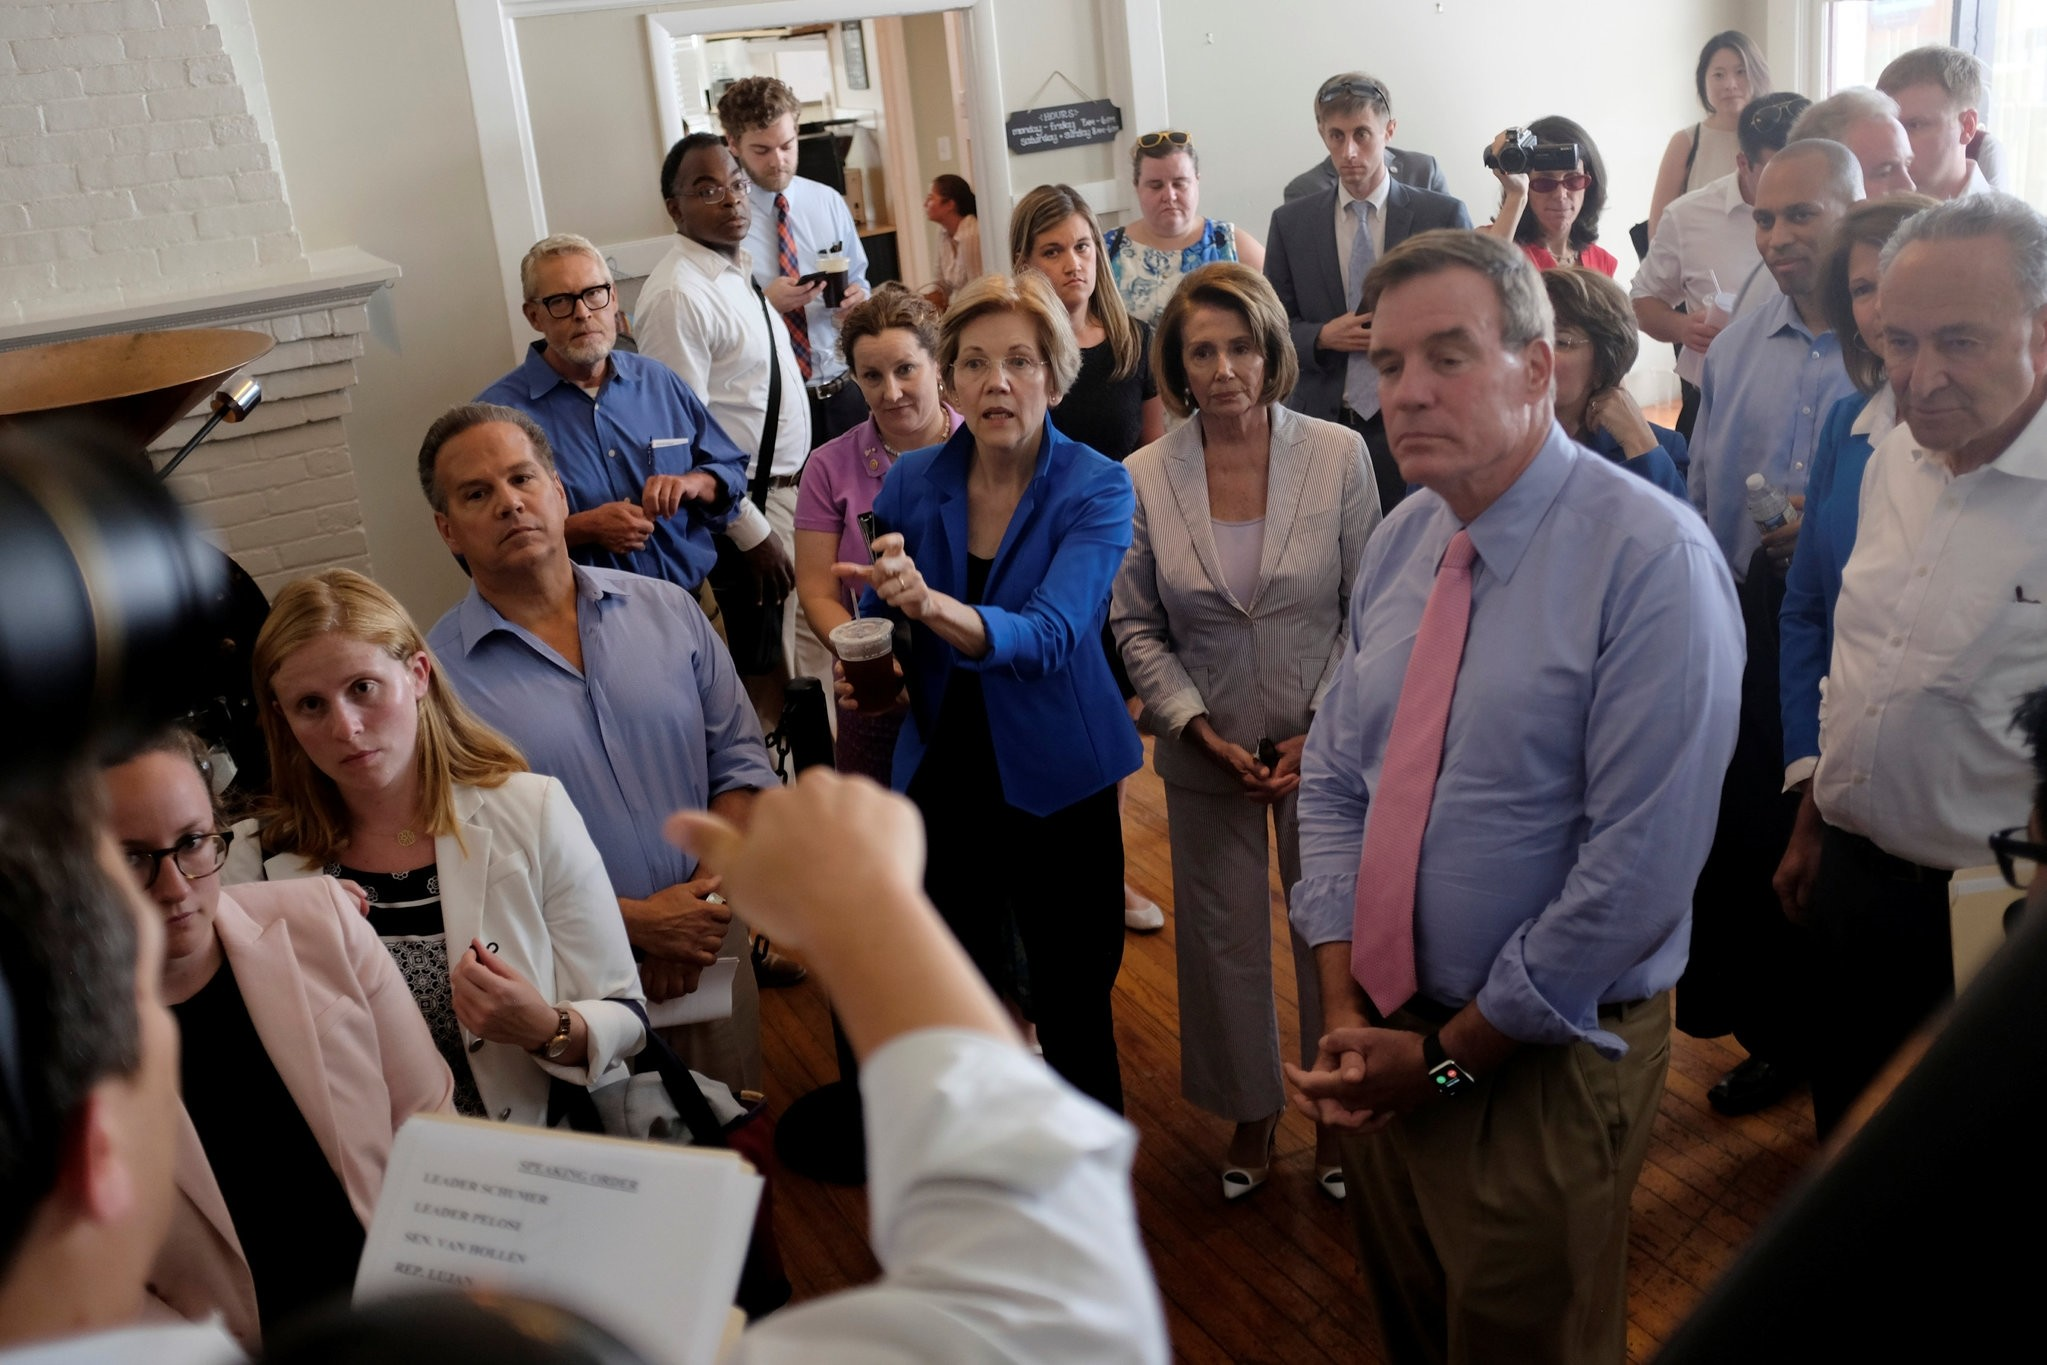 US senators huddle together in a coffee shop before unveiling the Democratic party's ,A Better Deal, for working Americans in Berryville, Virginia, U.S., July 24, 2017. (REUTERS Photo)